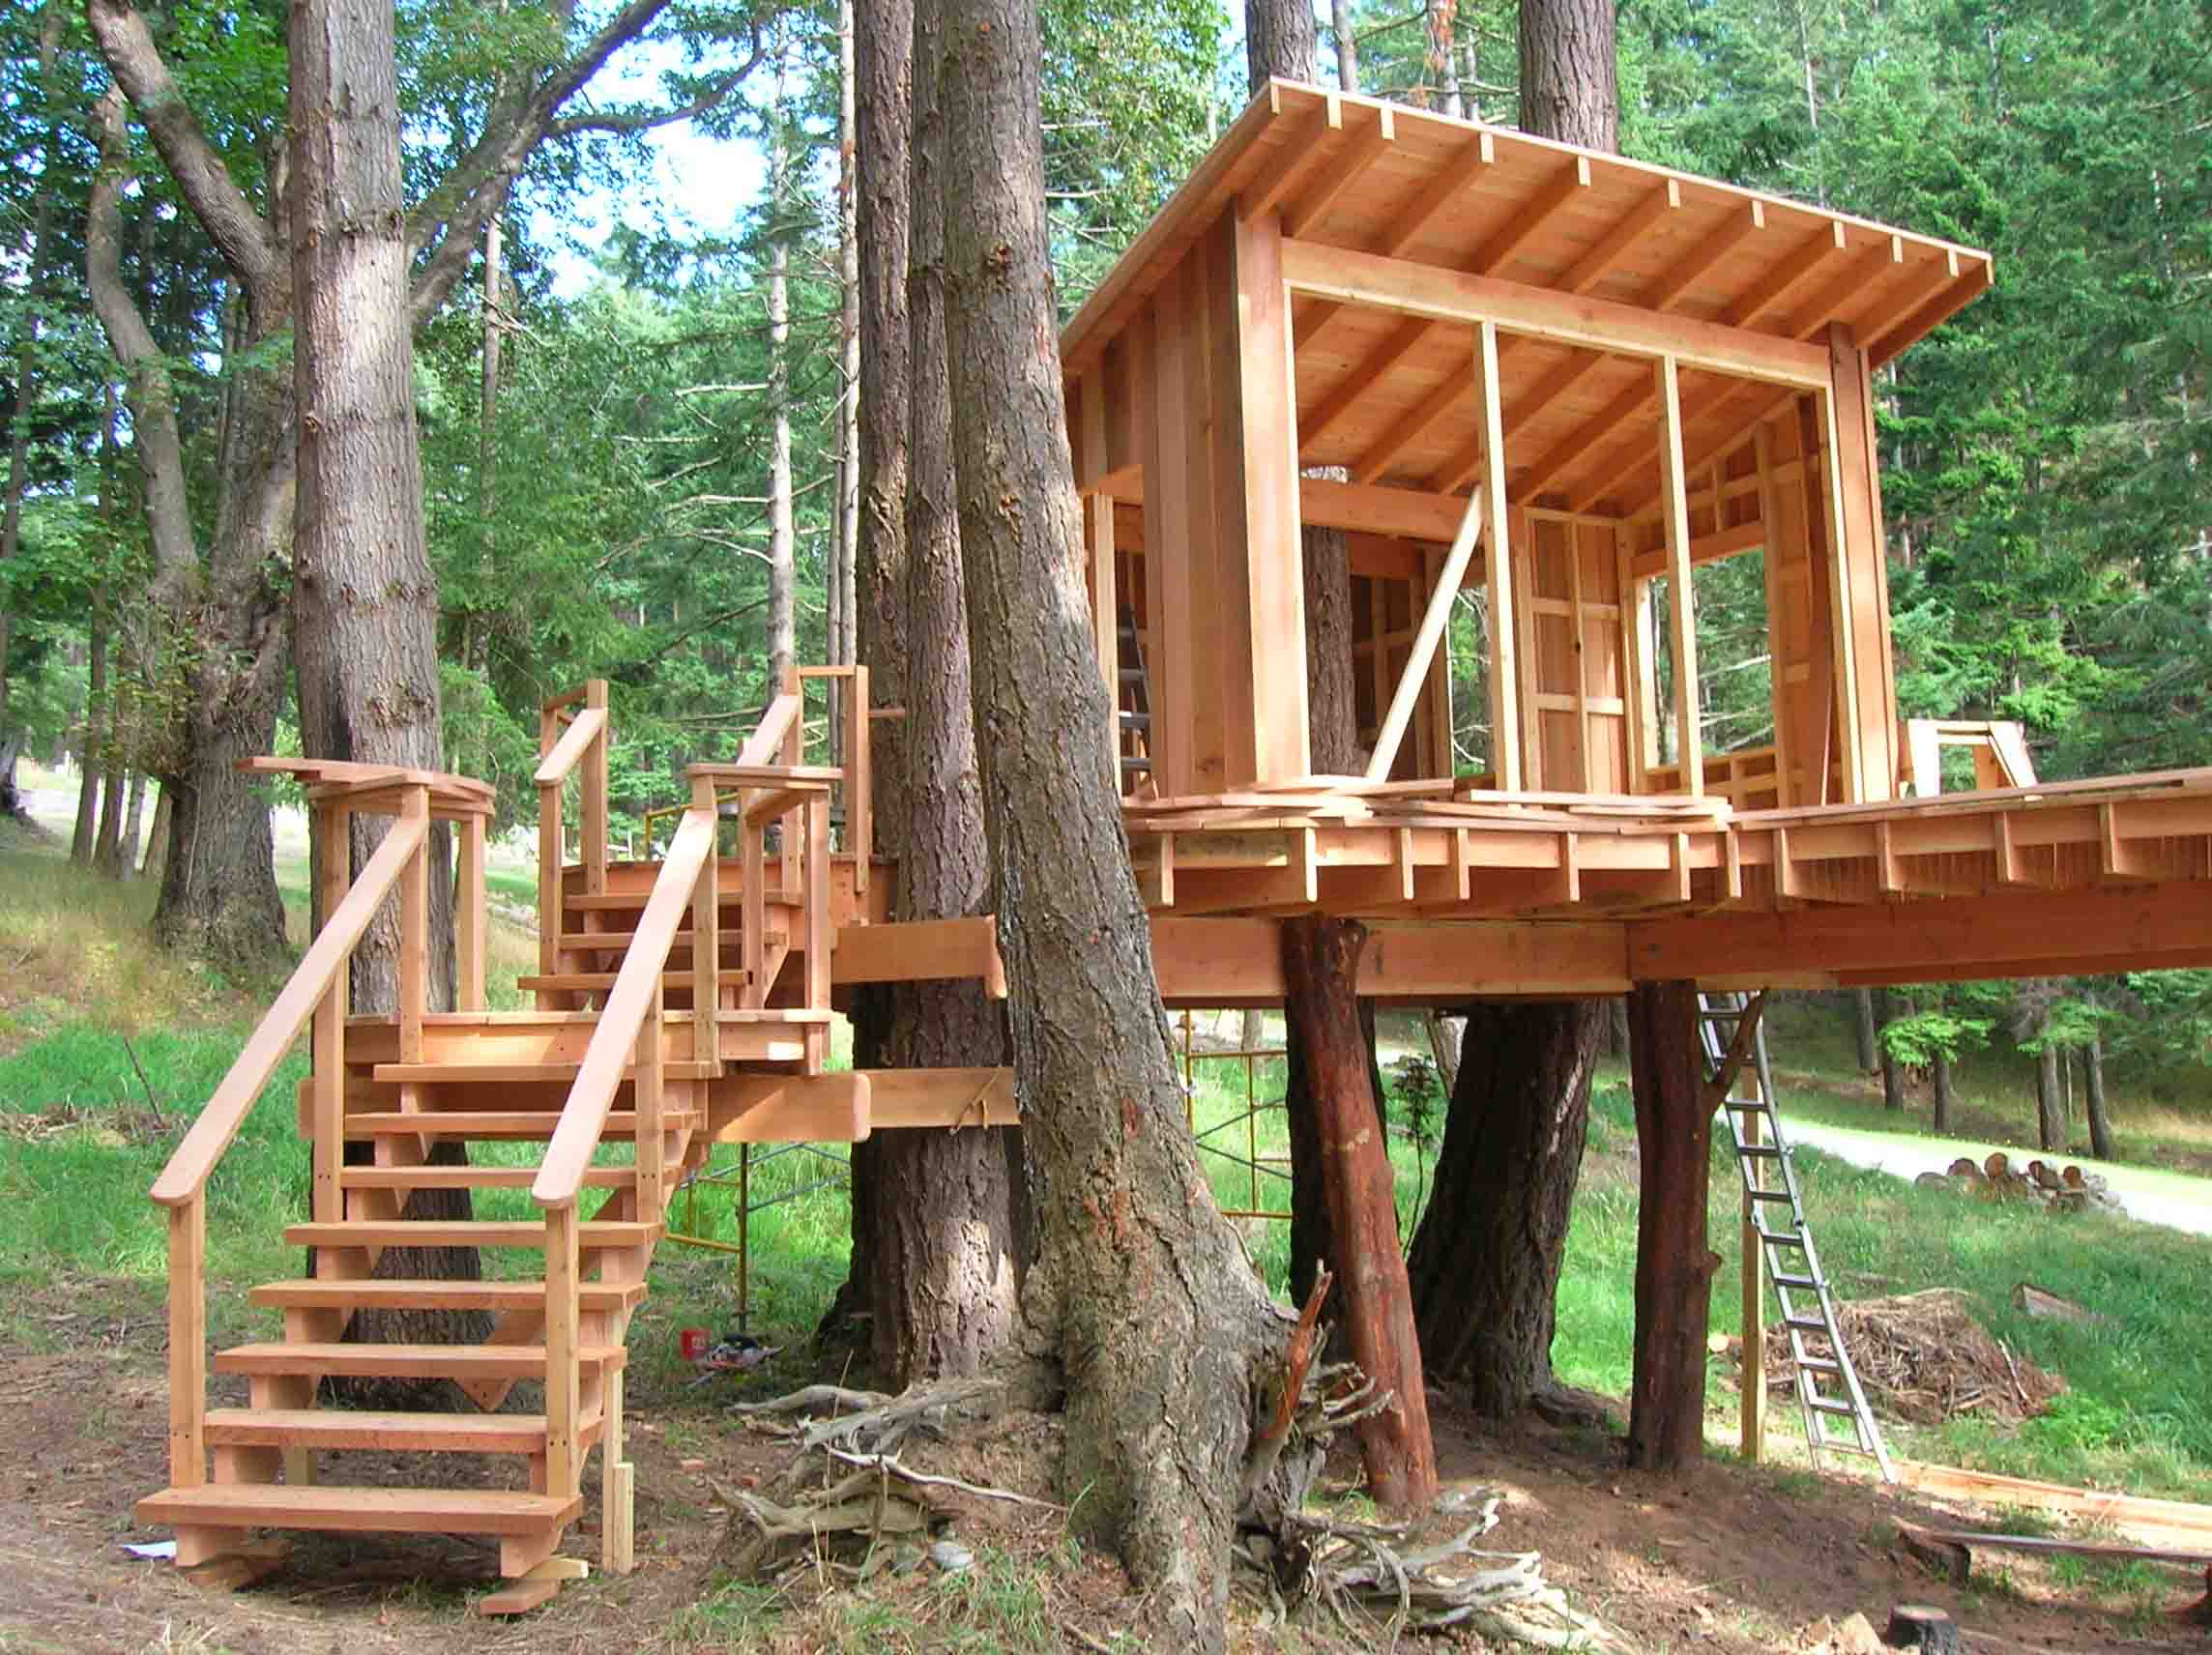 The Little Treehouse